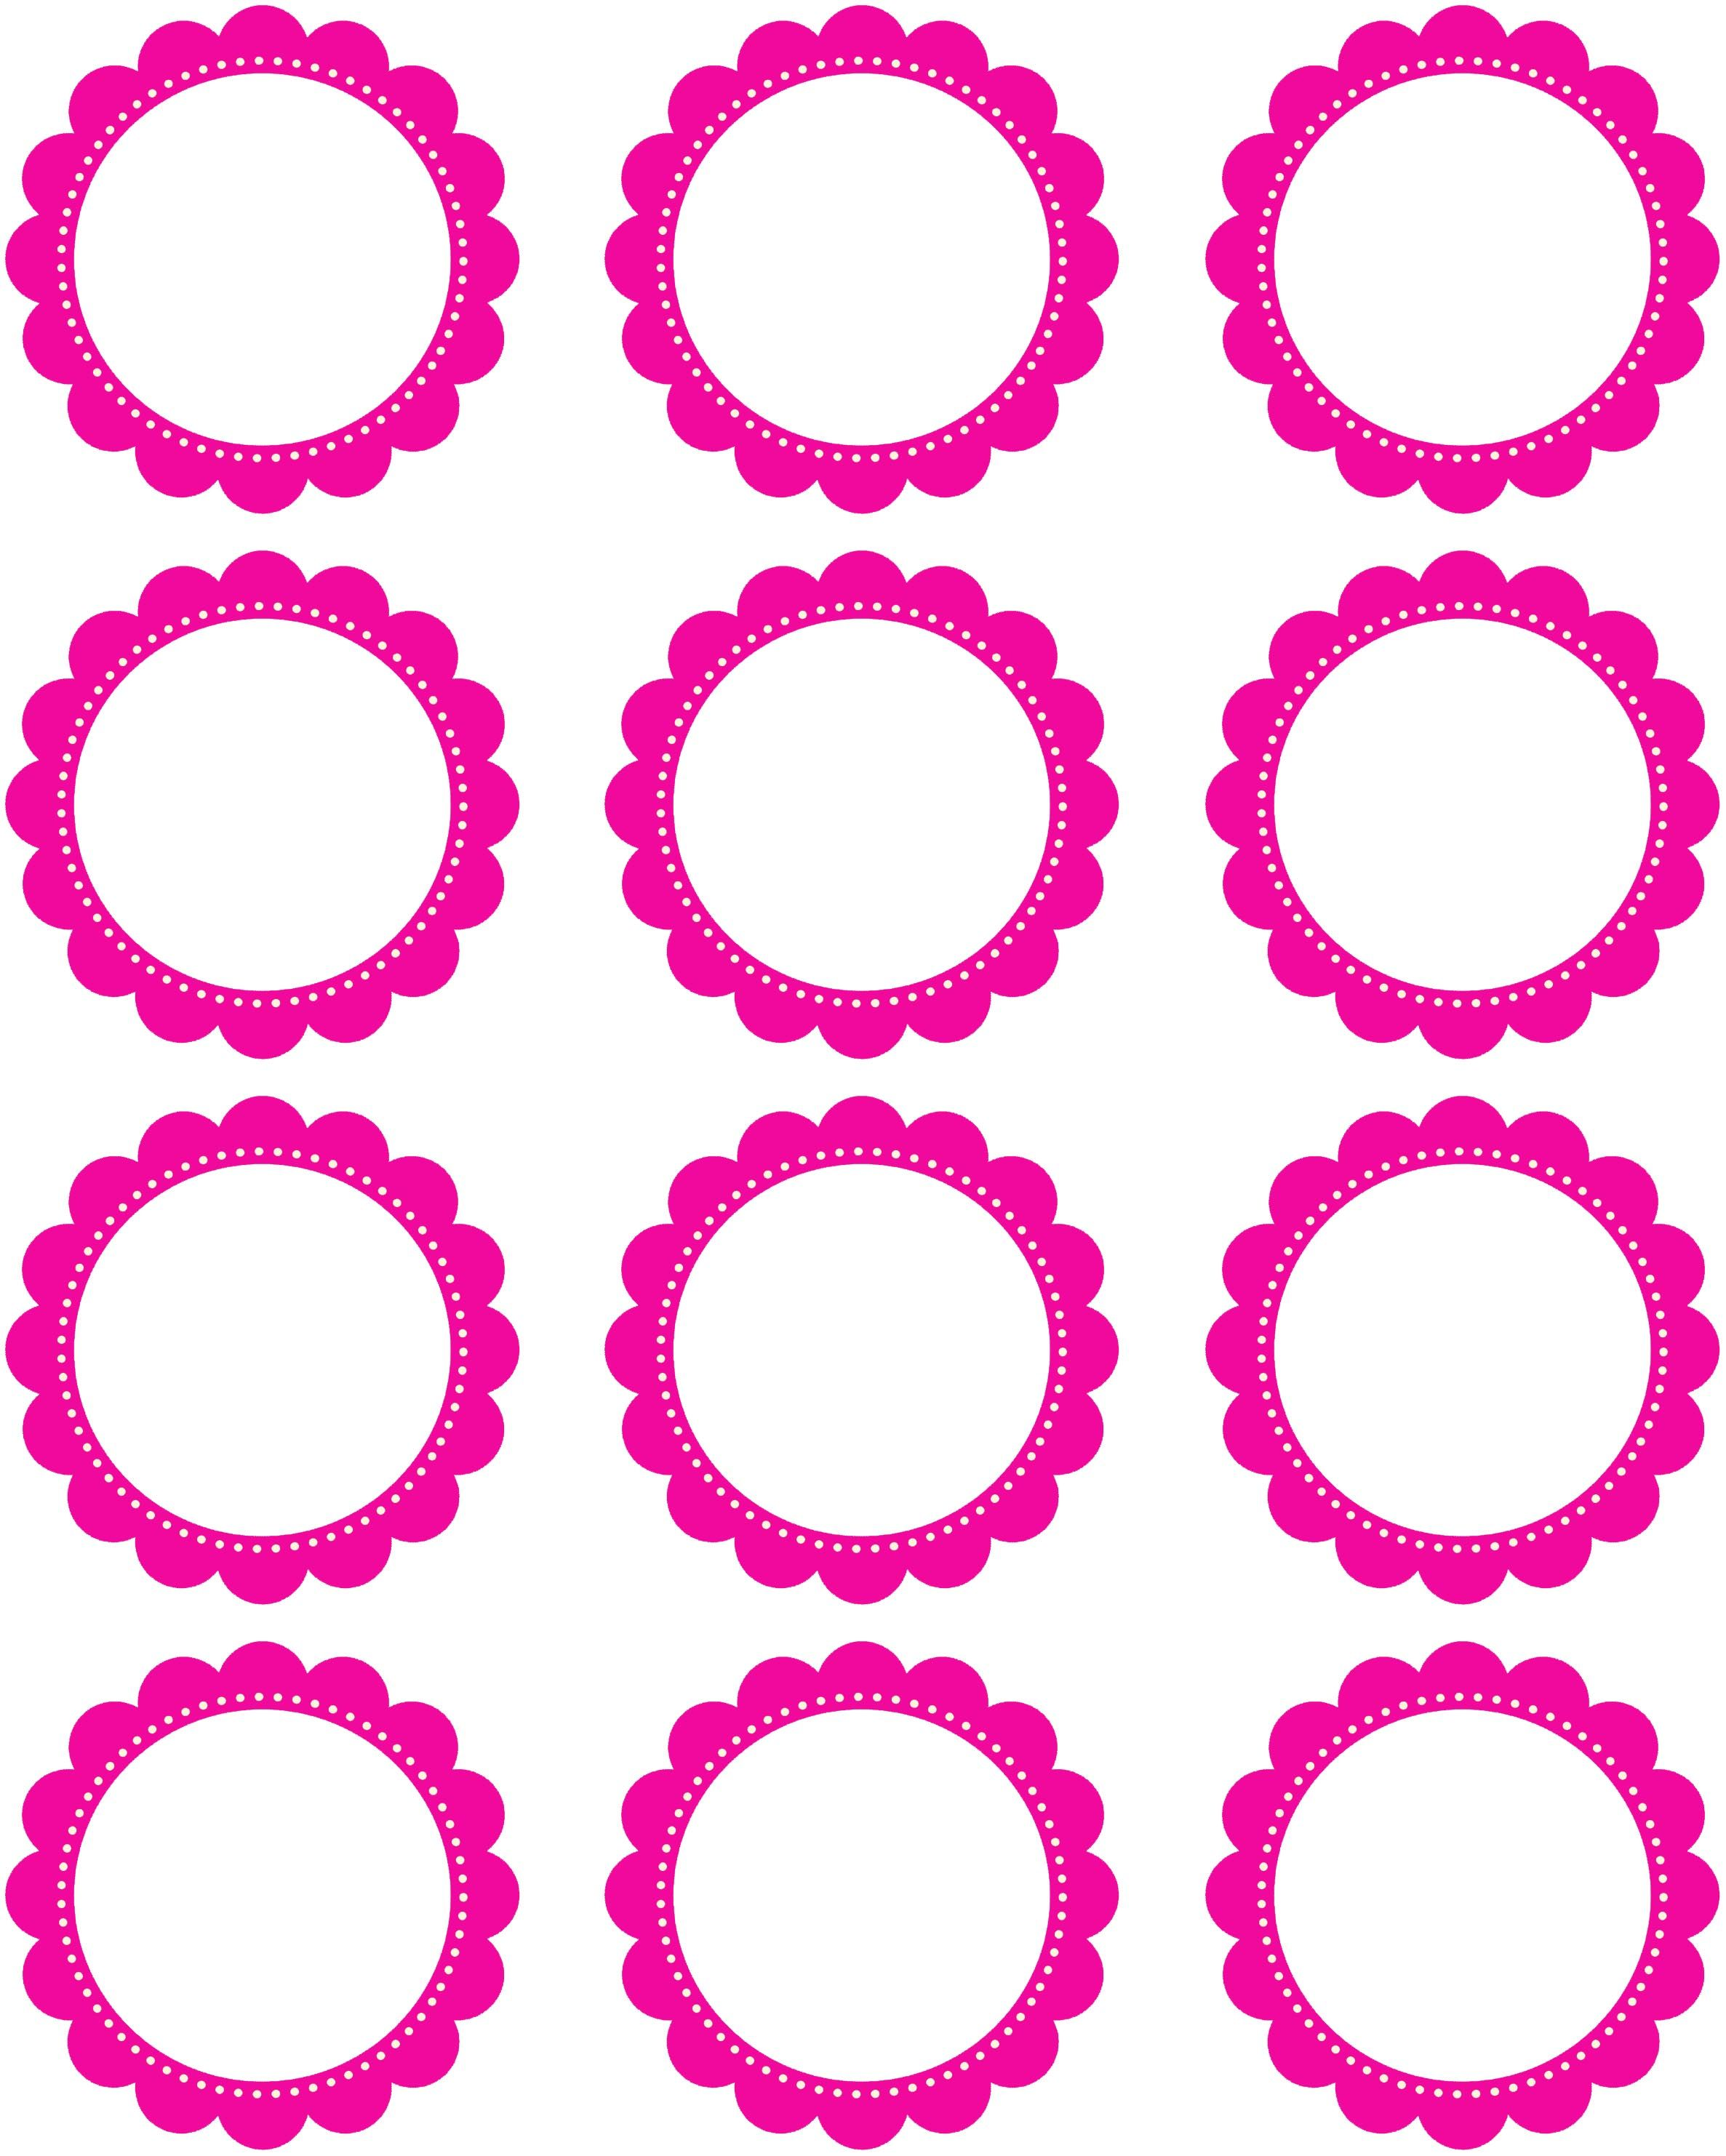 Free Printable  Inch Hot Pink Scallop Circles  My Etsy Shoppe